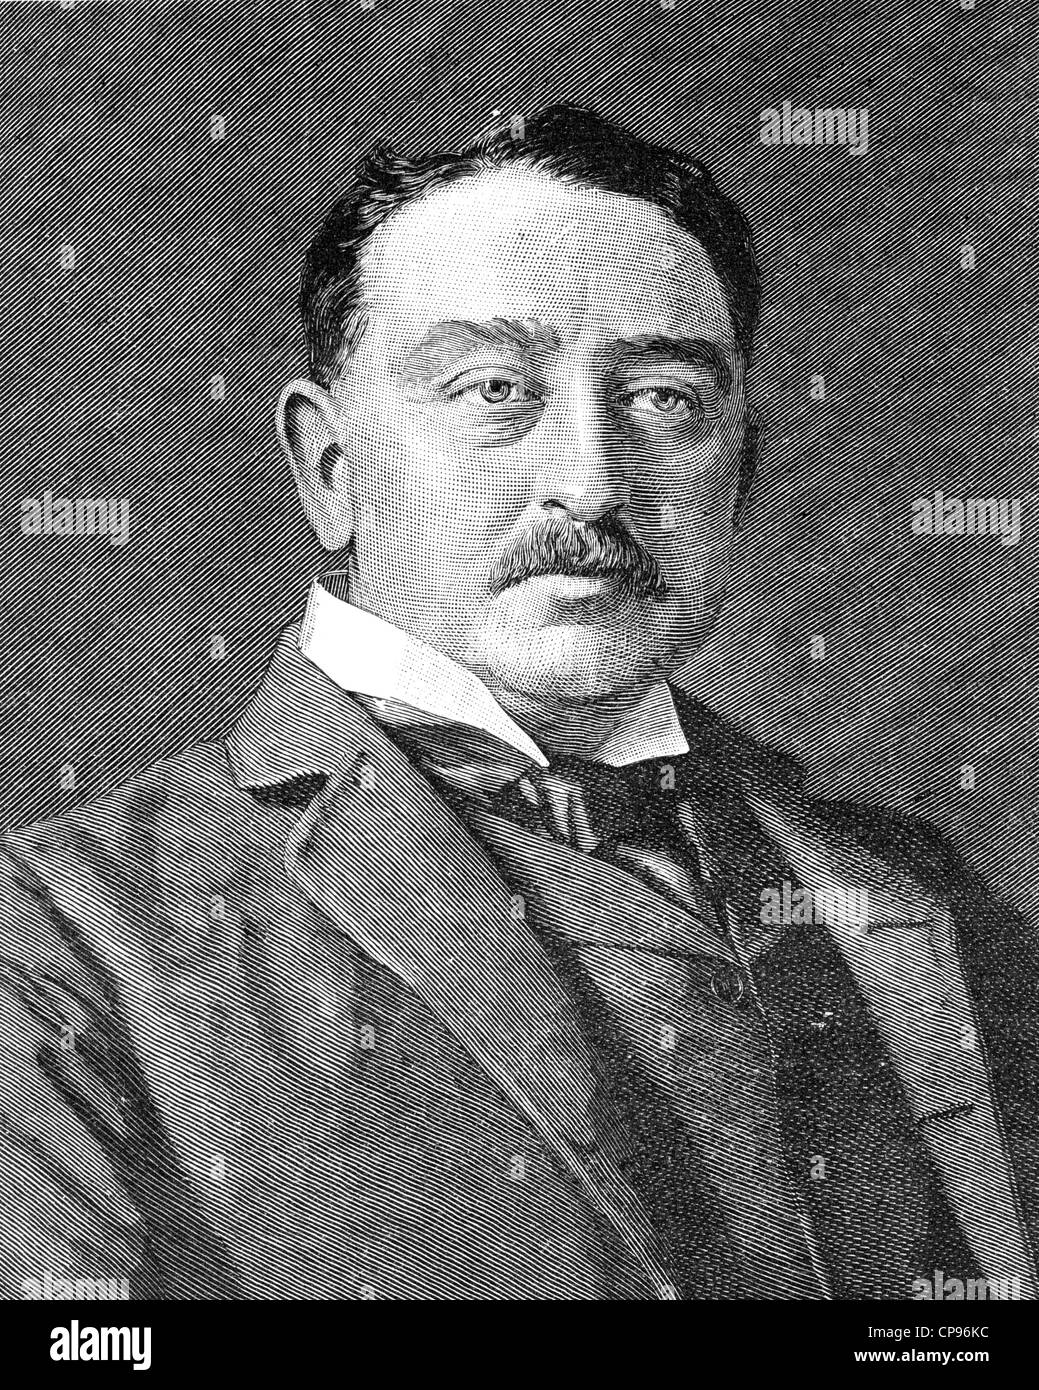 CECIL RHODES (1853-1902) South African businessman and politician - Stock Image